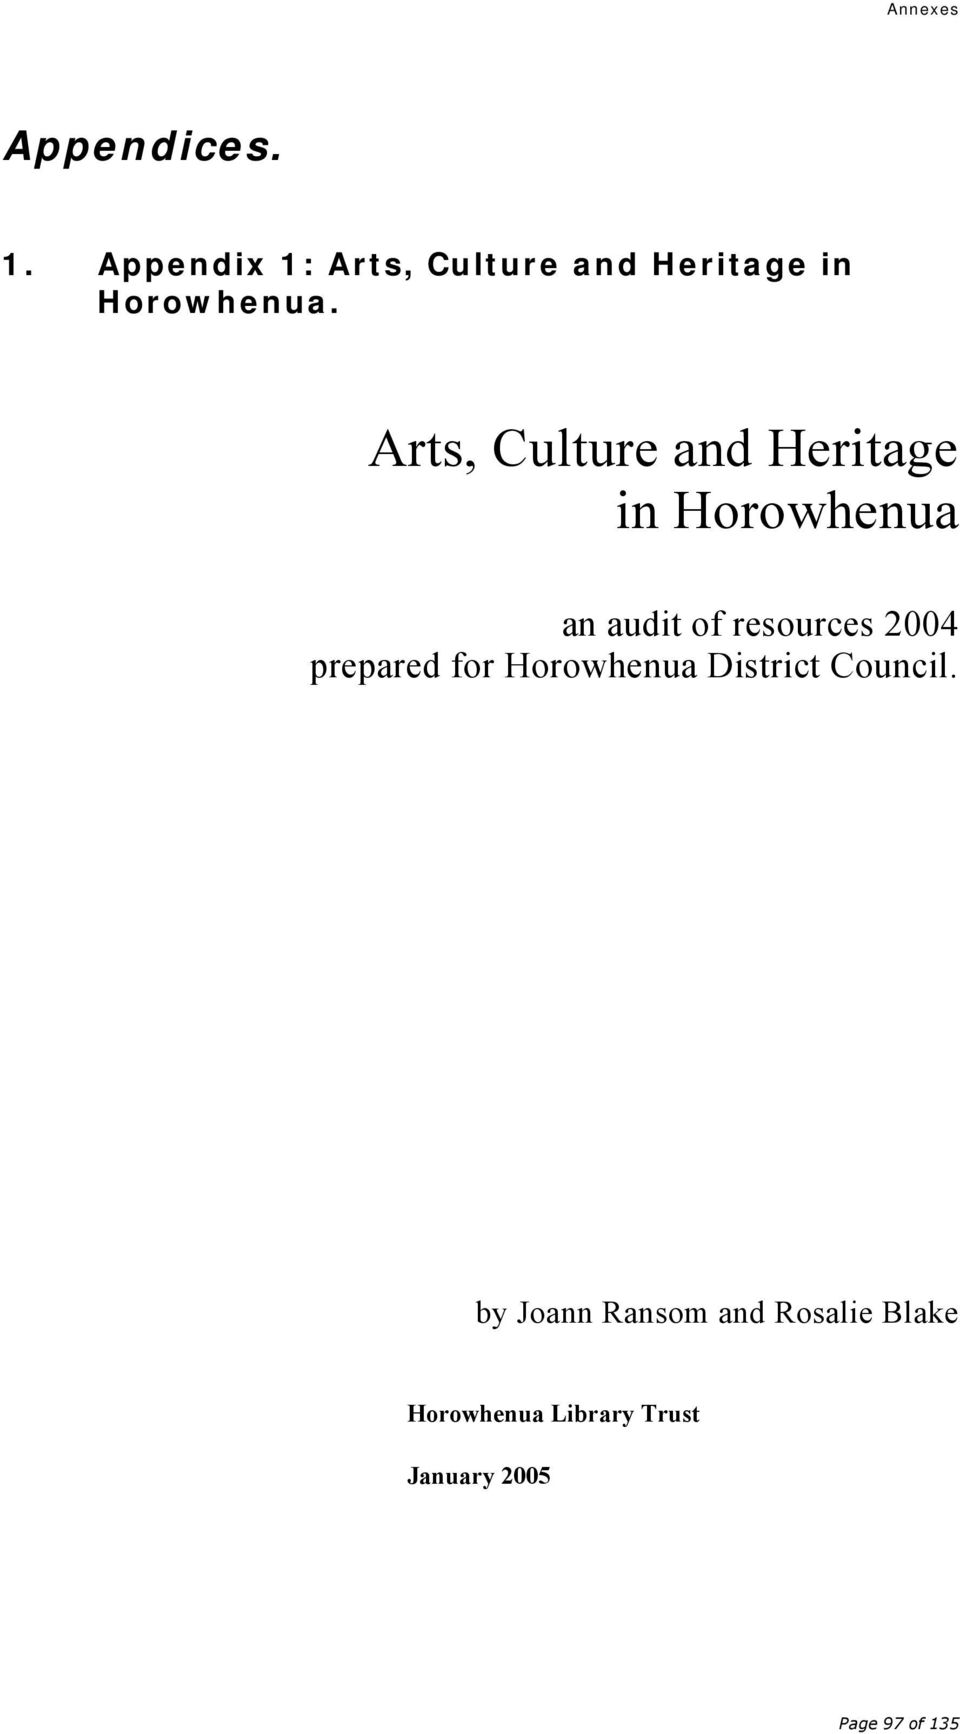 Arts, Culture and Heritage in Horowhenua an audit of resources